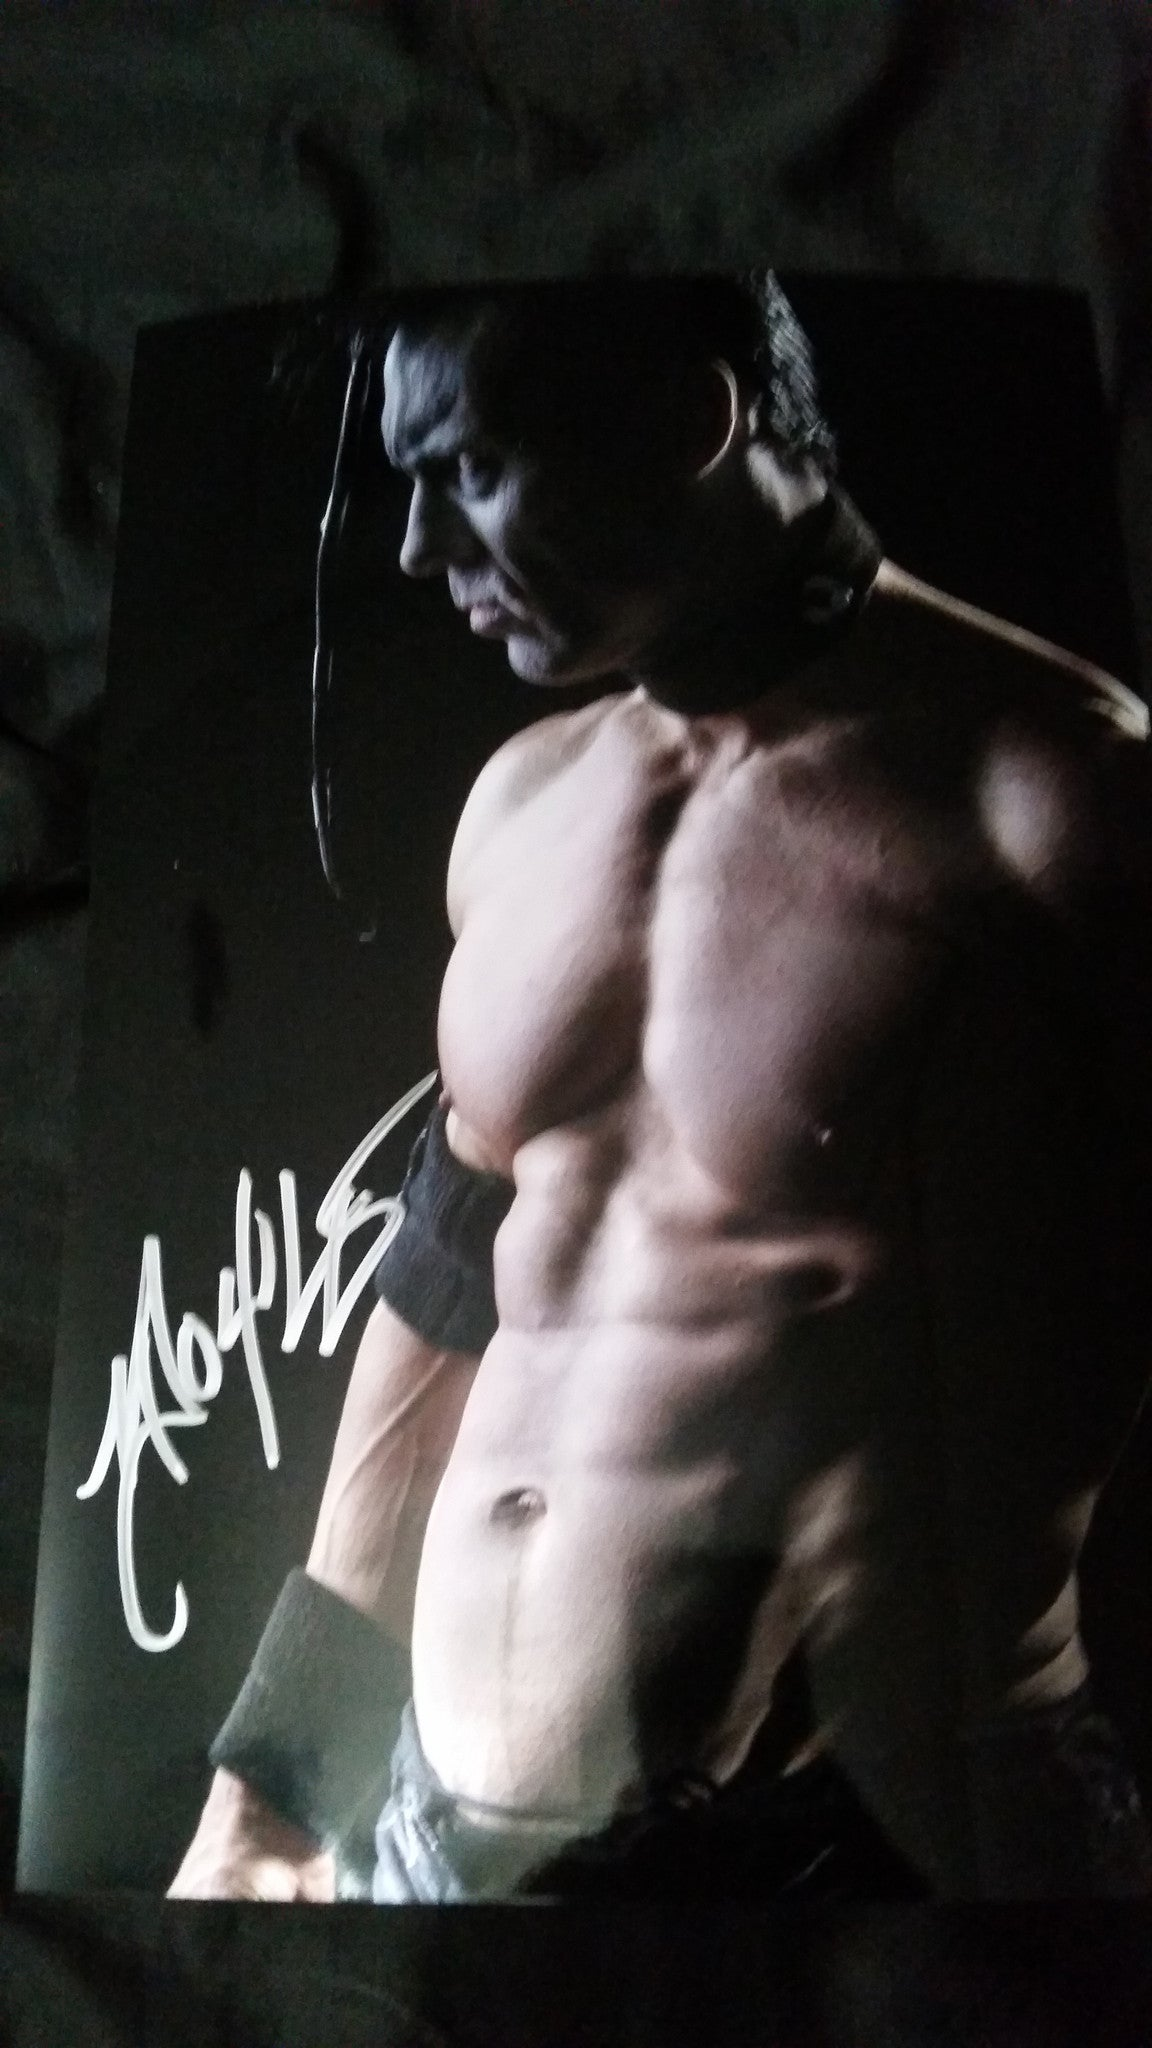 Doyle Wolfgang Von Frankenstein - Shadows - Signed limited edition metallic 8x12